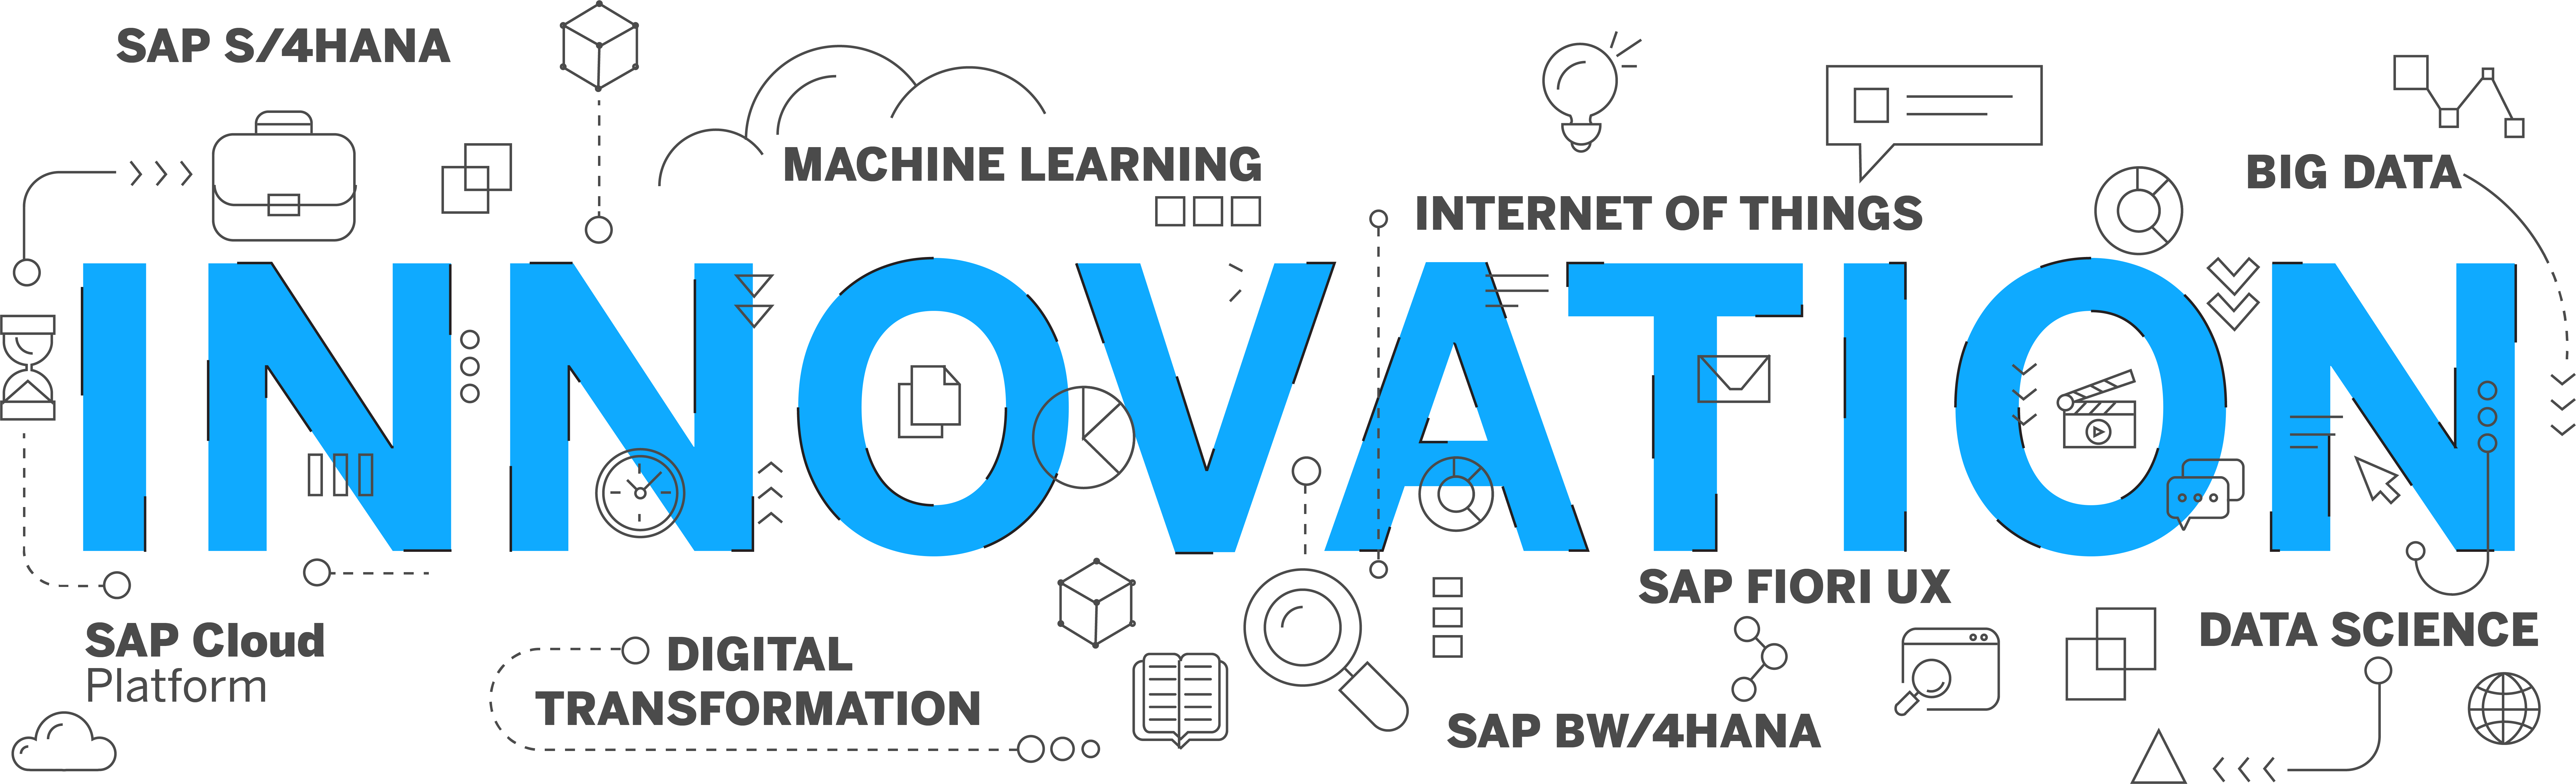 SAP Innovations